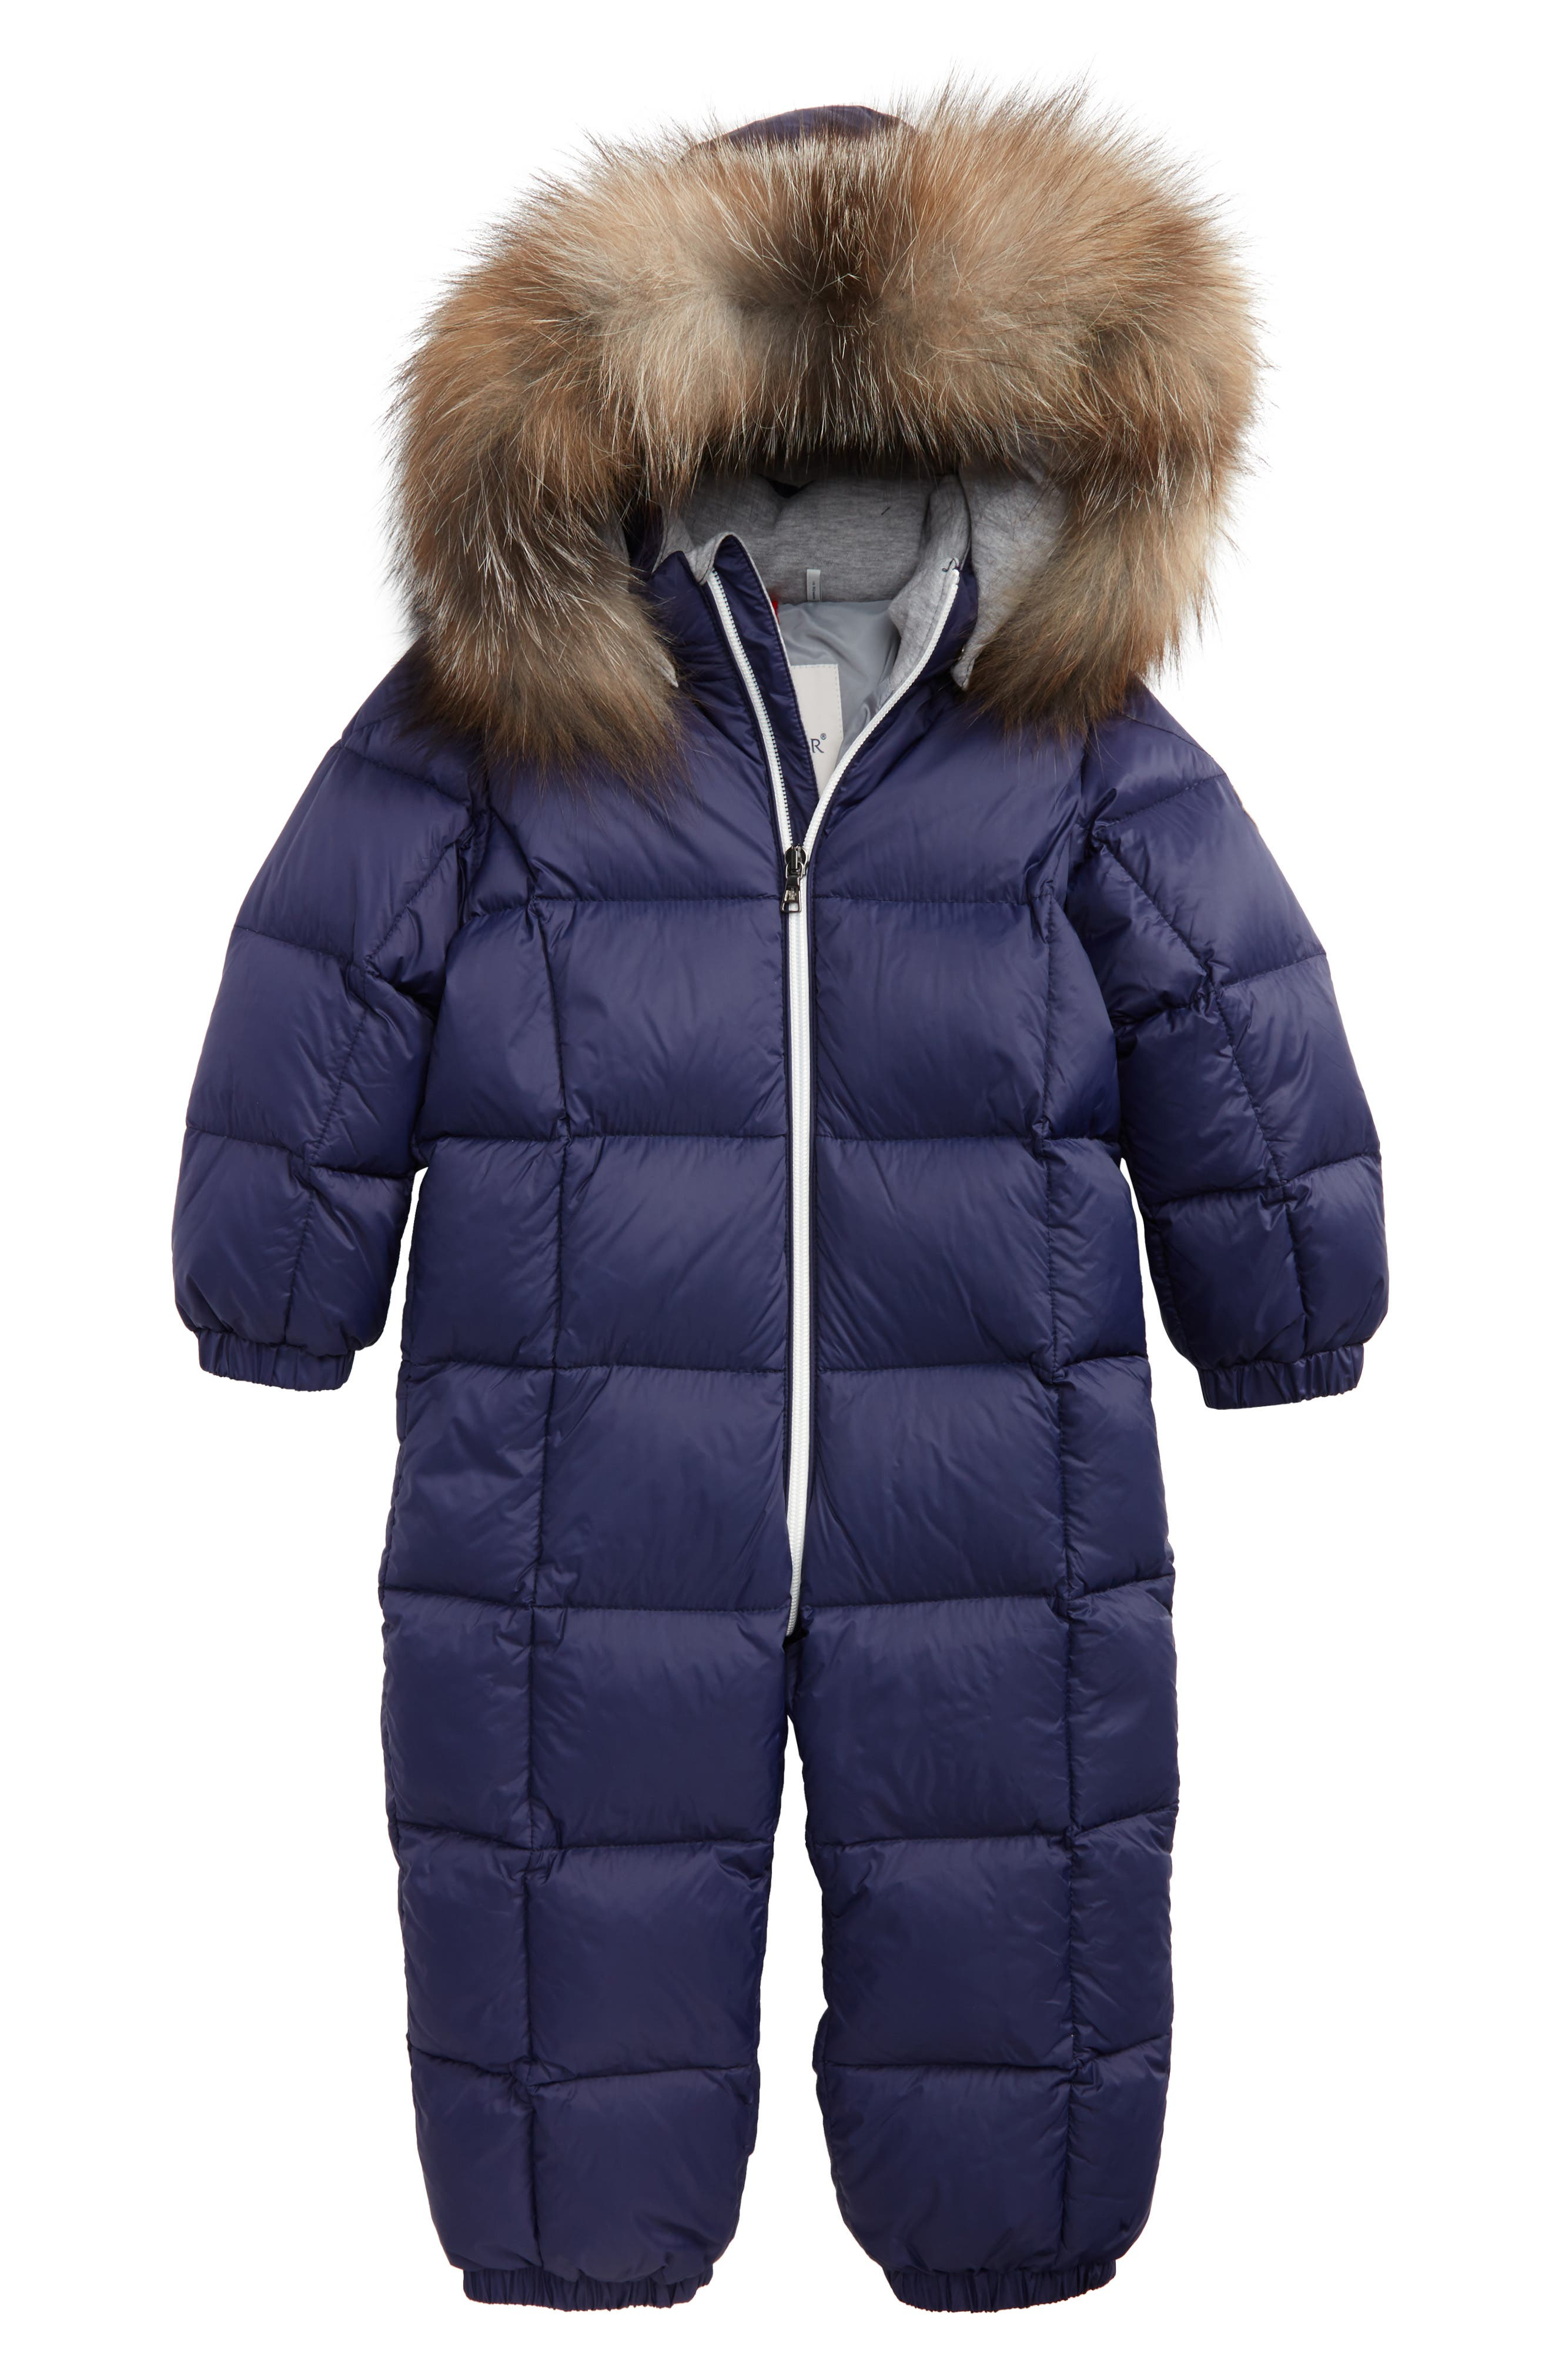 Alternate Image 1 Selected - Moncler Jean Down Bunting with Genuine Fox Fur Trim (Baby & Toddler)